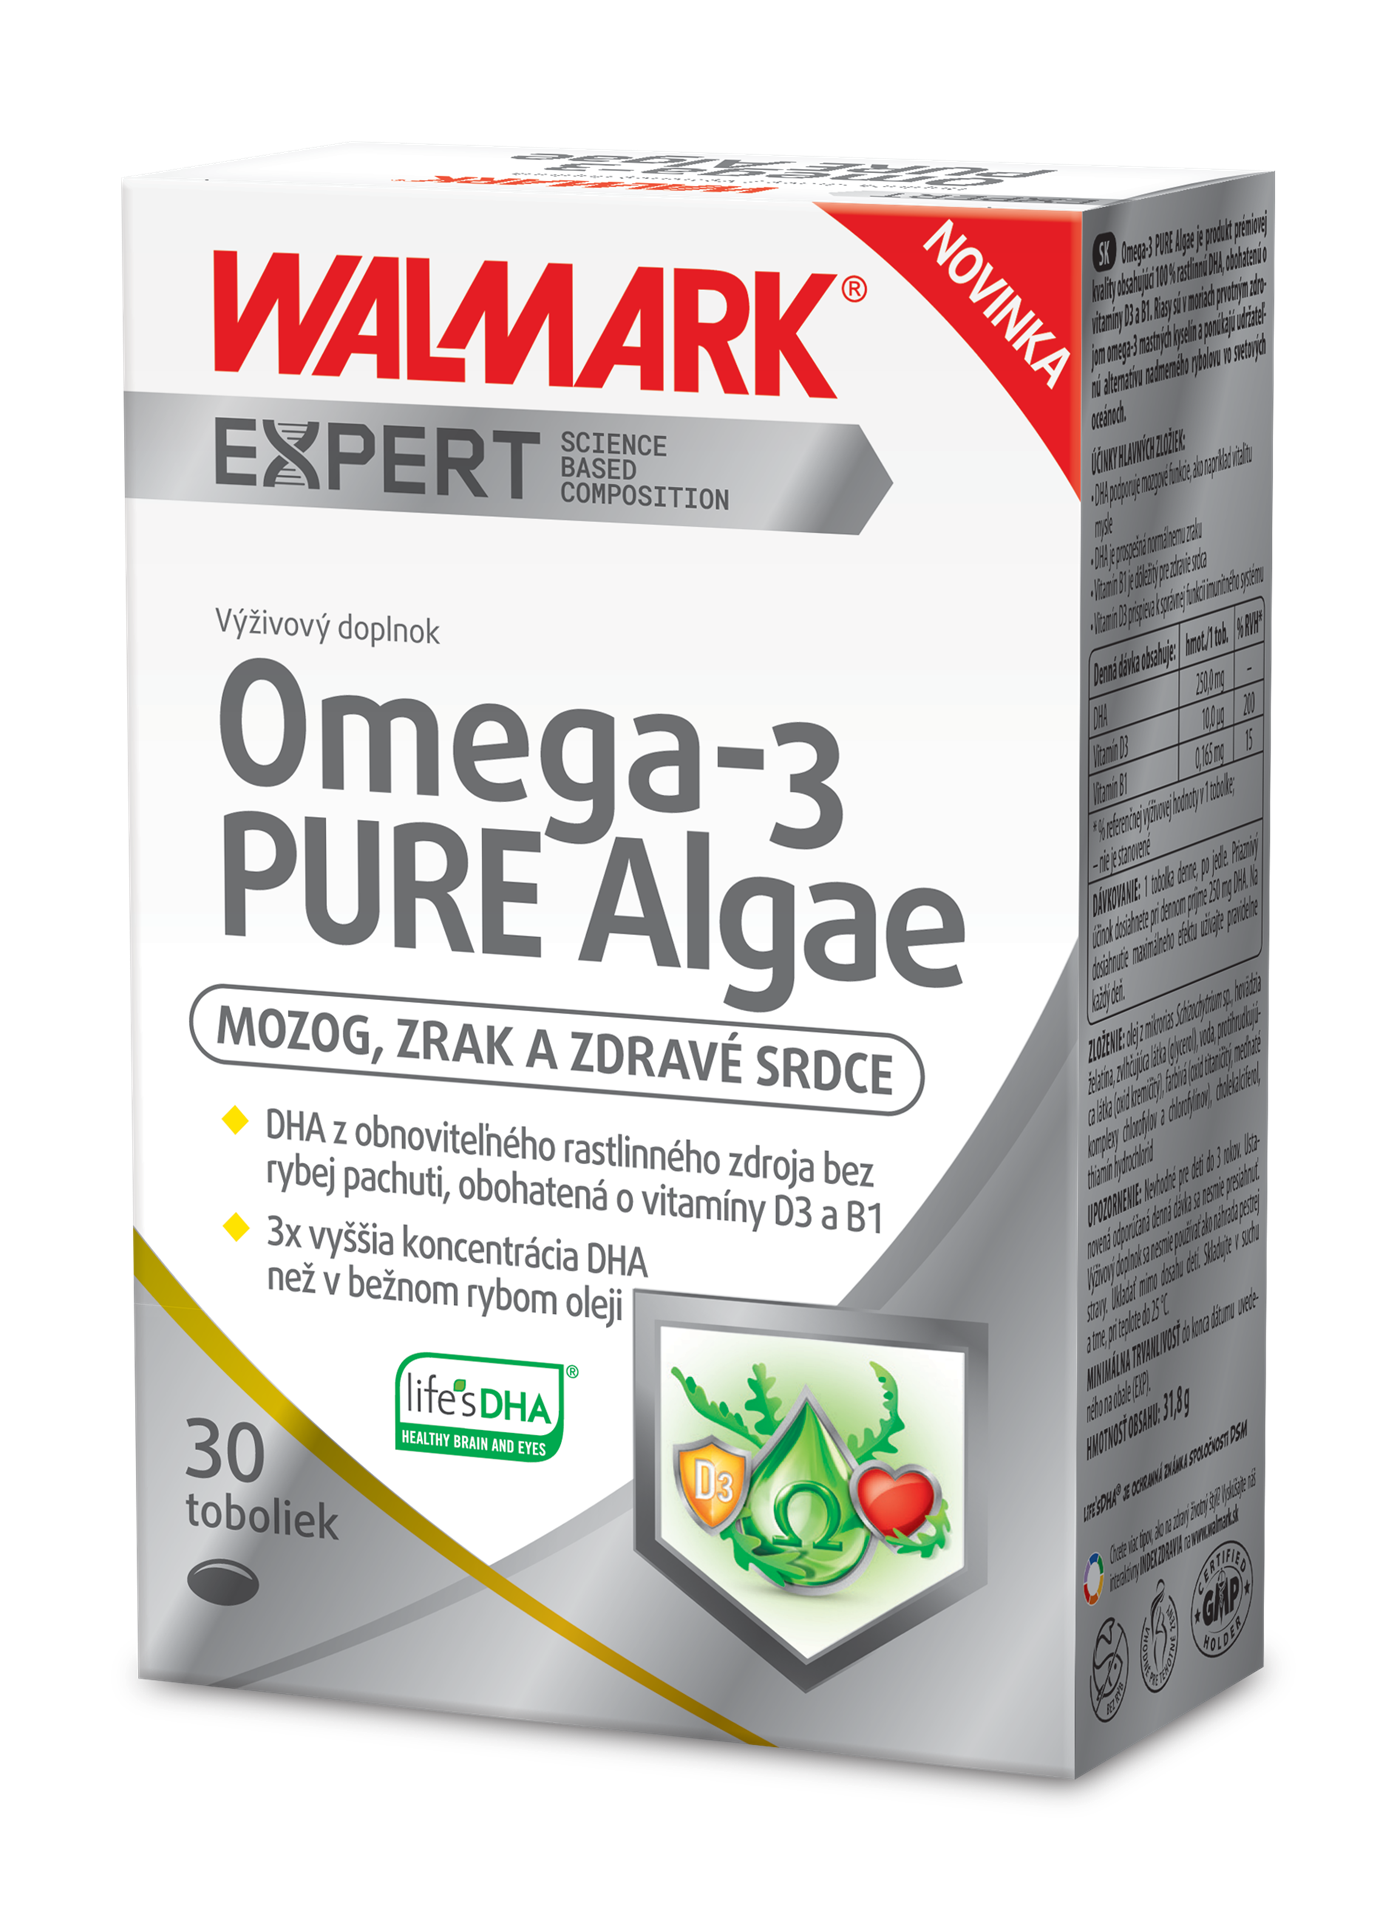 3D_R_Omega_3_PURE_Algae_with_DHA_30_W17237-S-02-CZE-SLO_SLO-(1).png